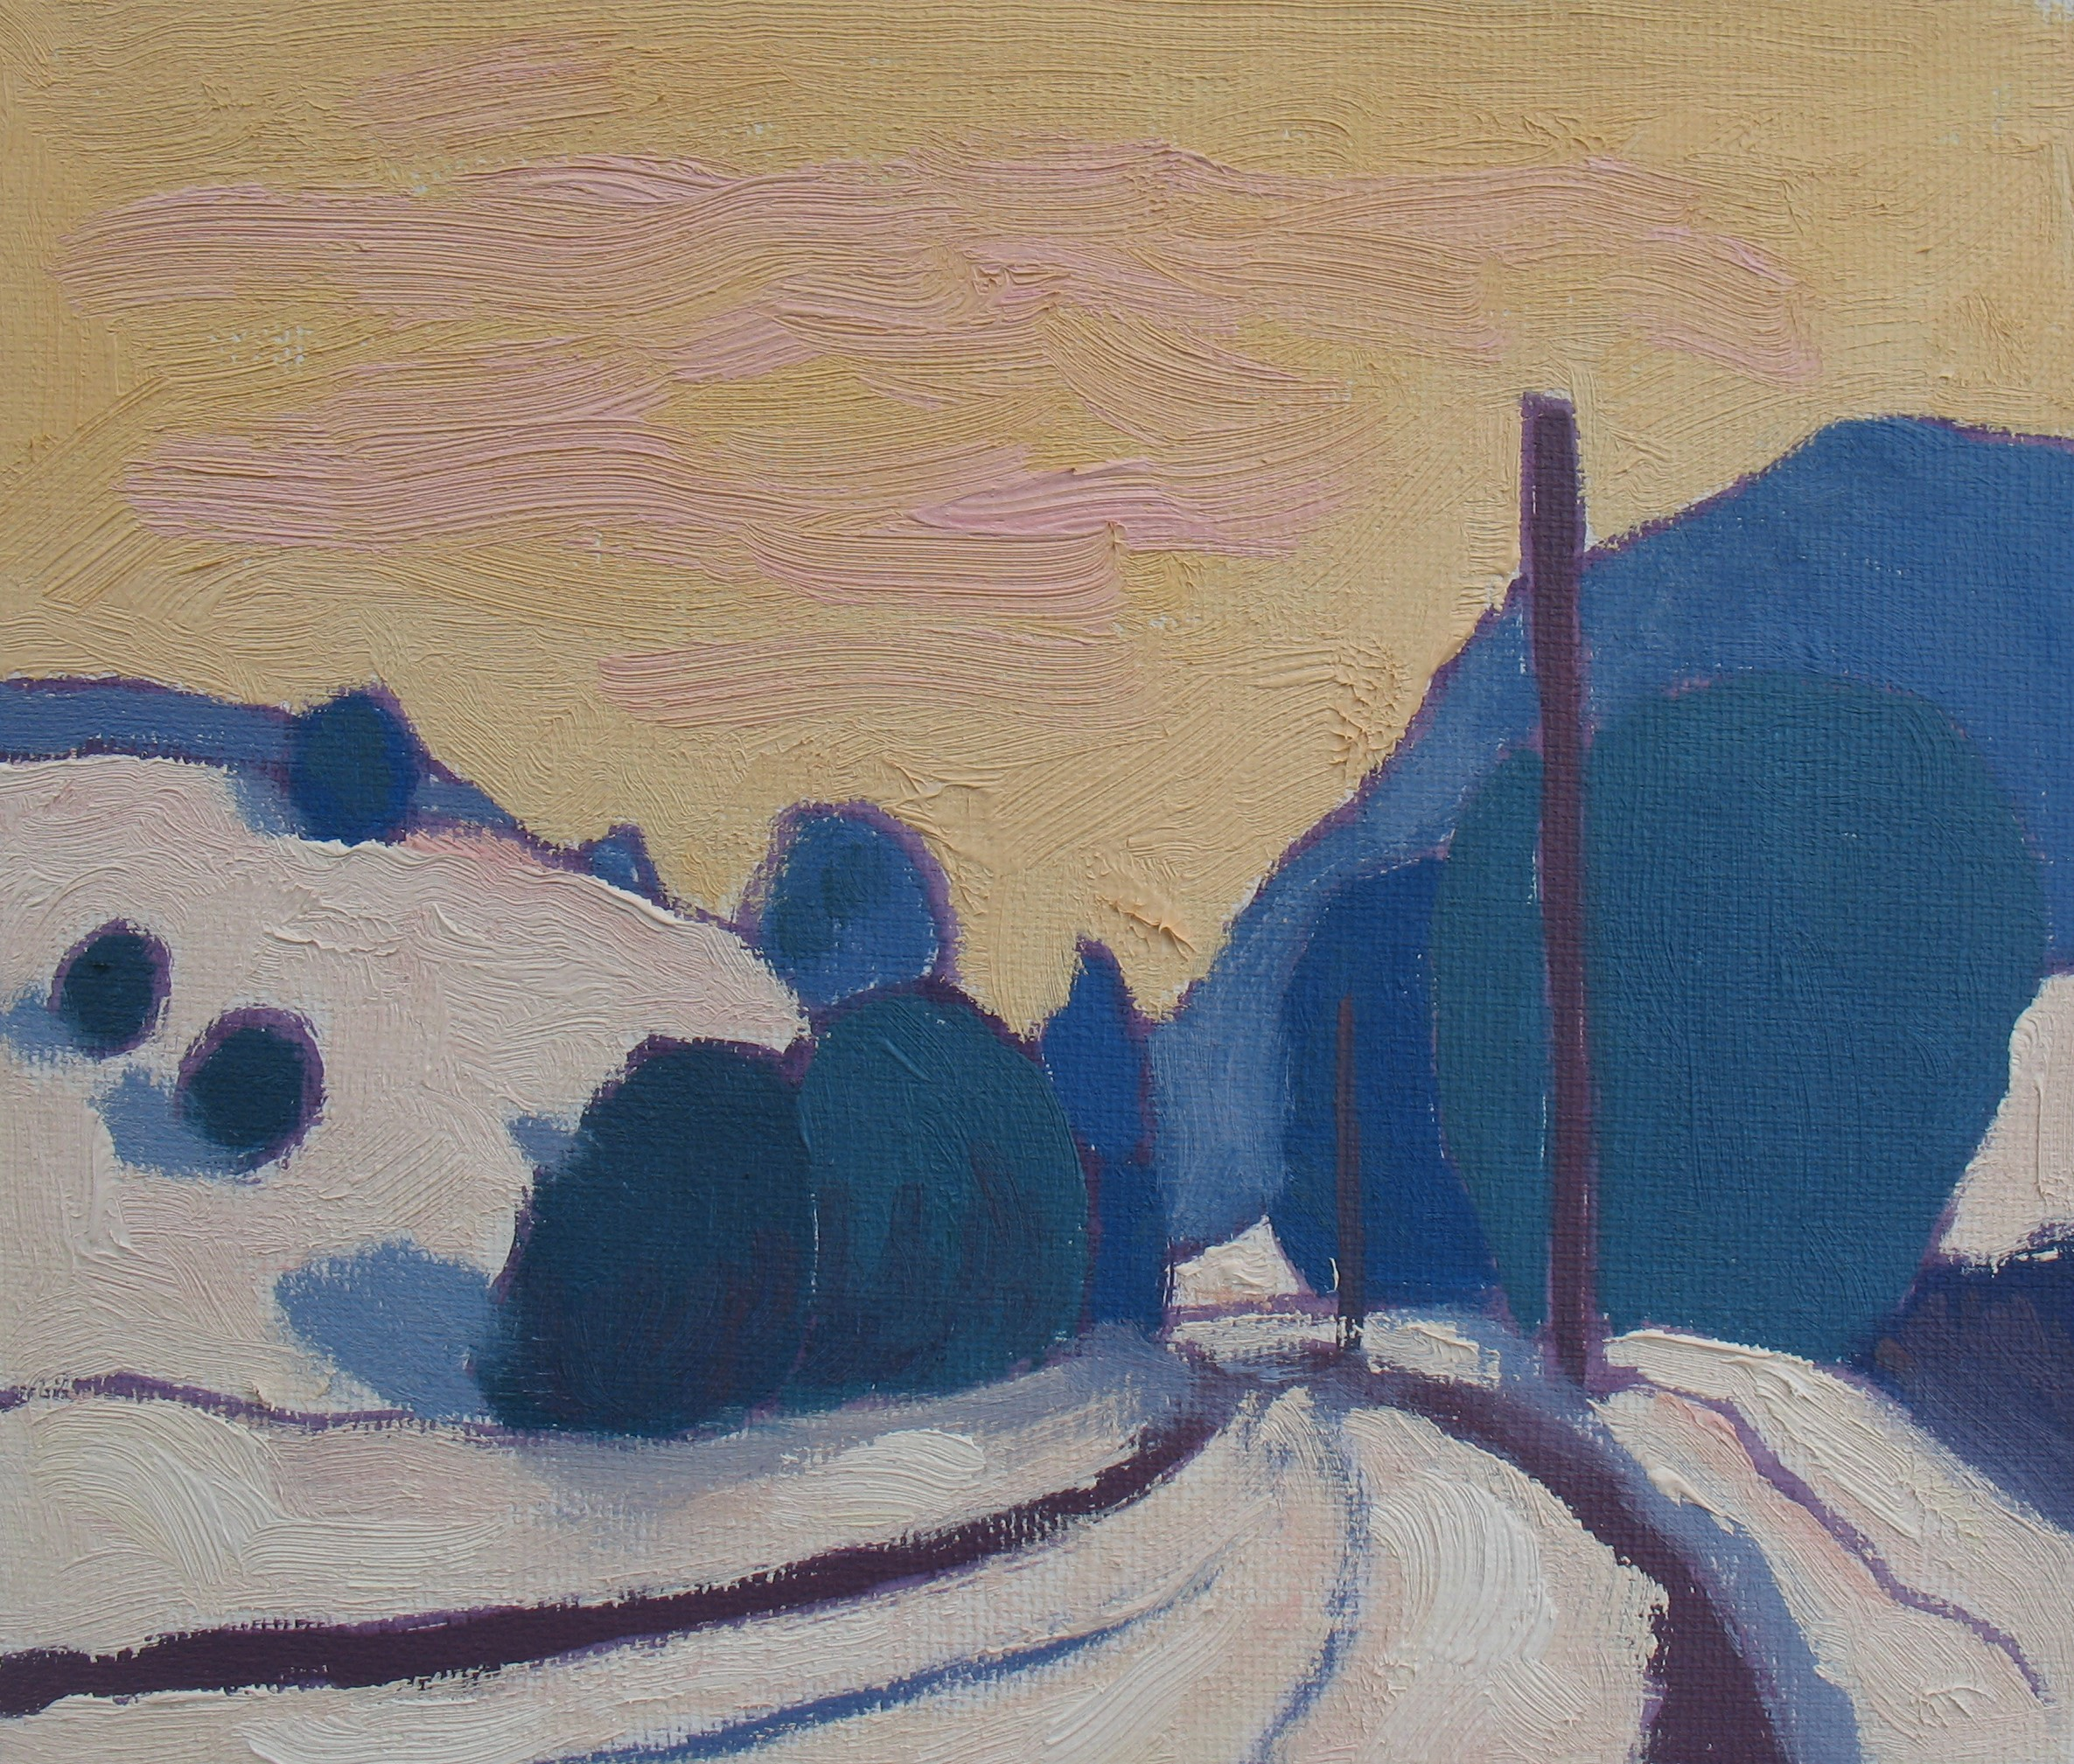 Winter Landscape Section I